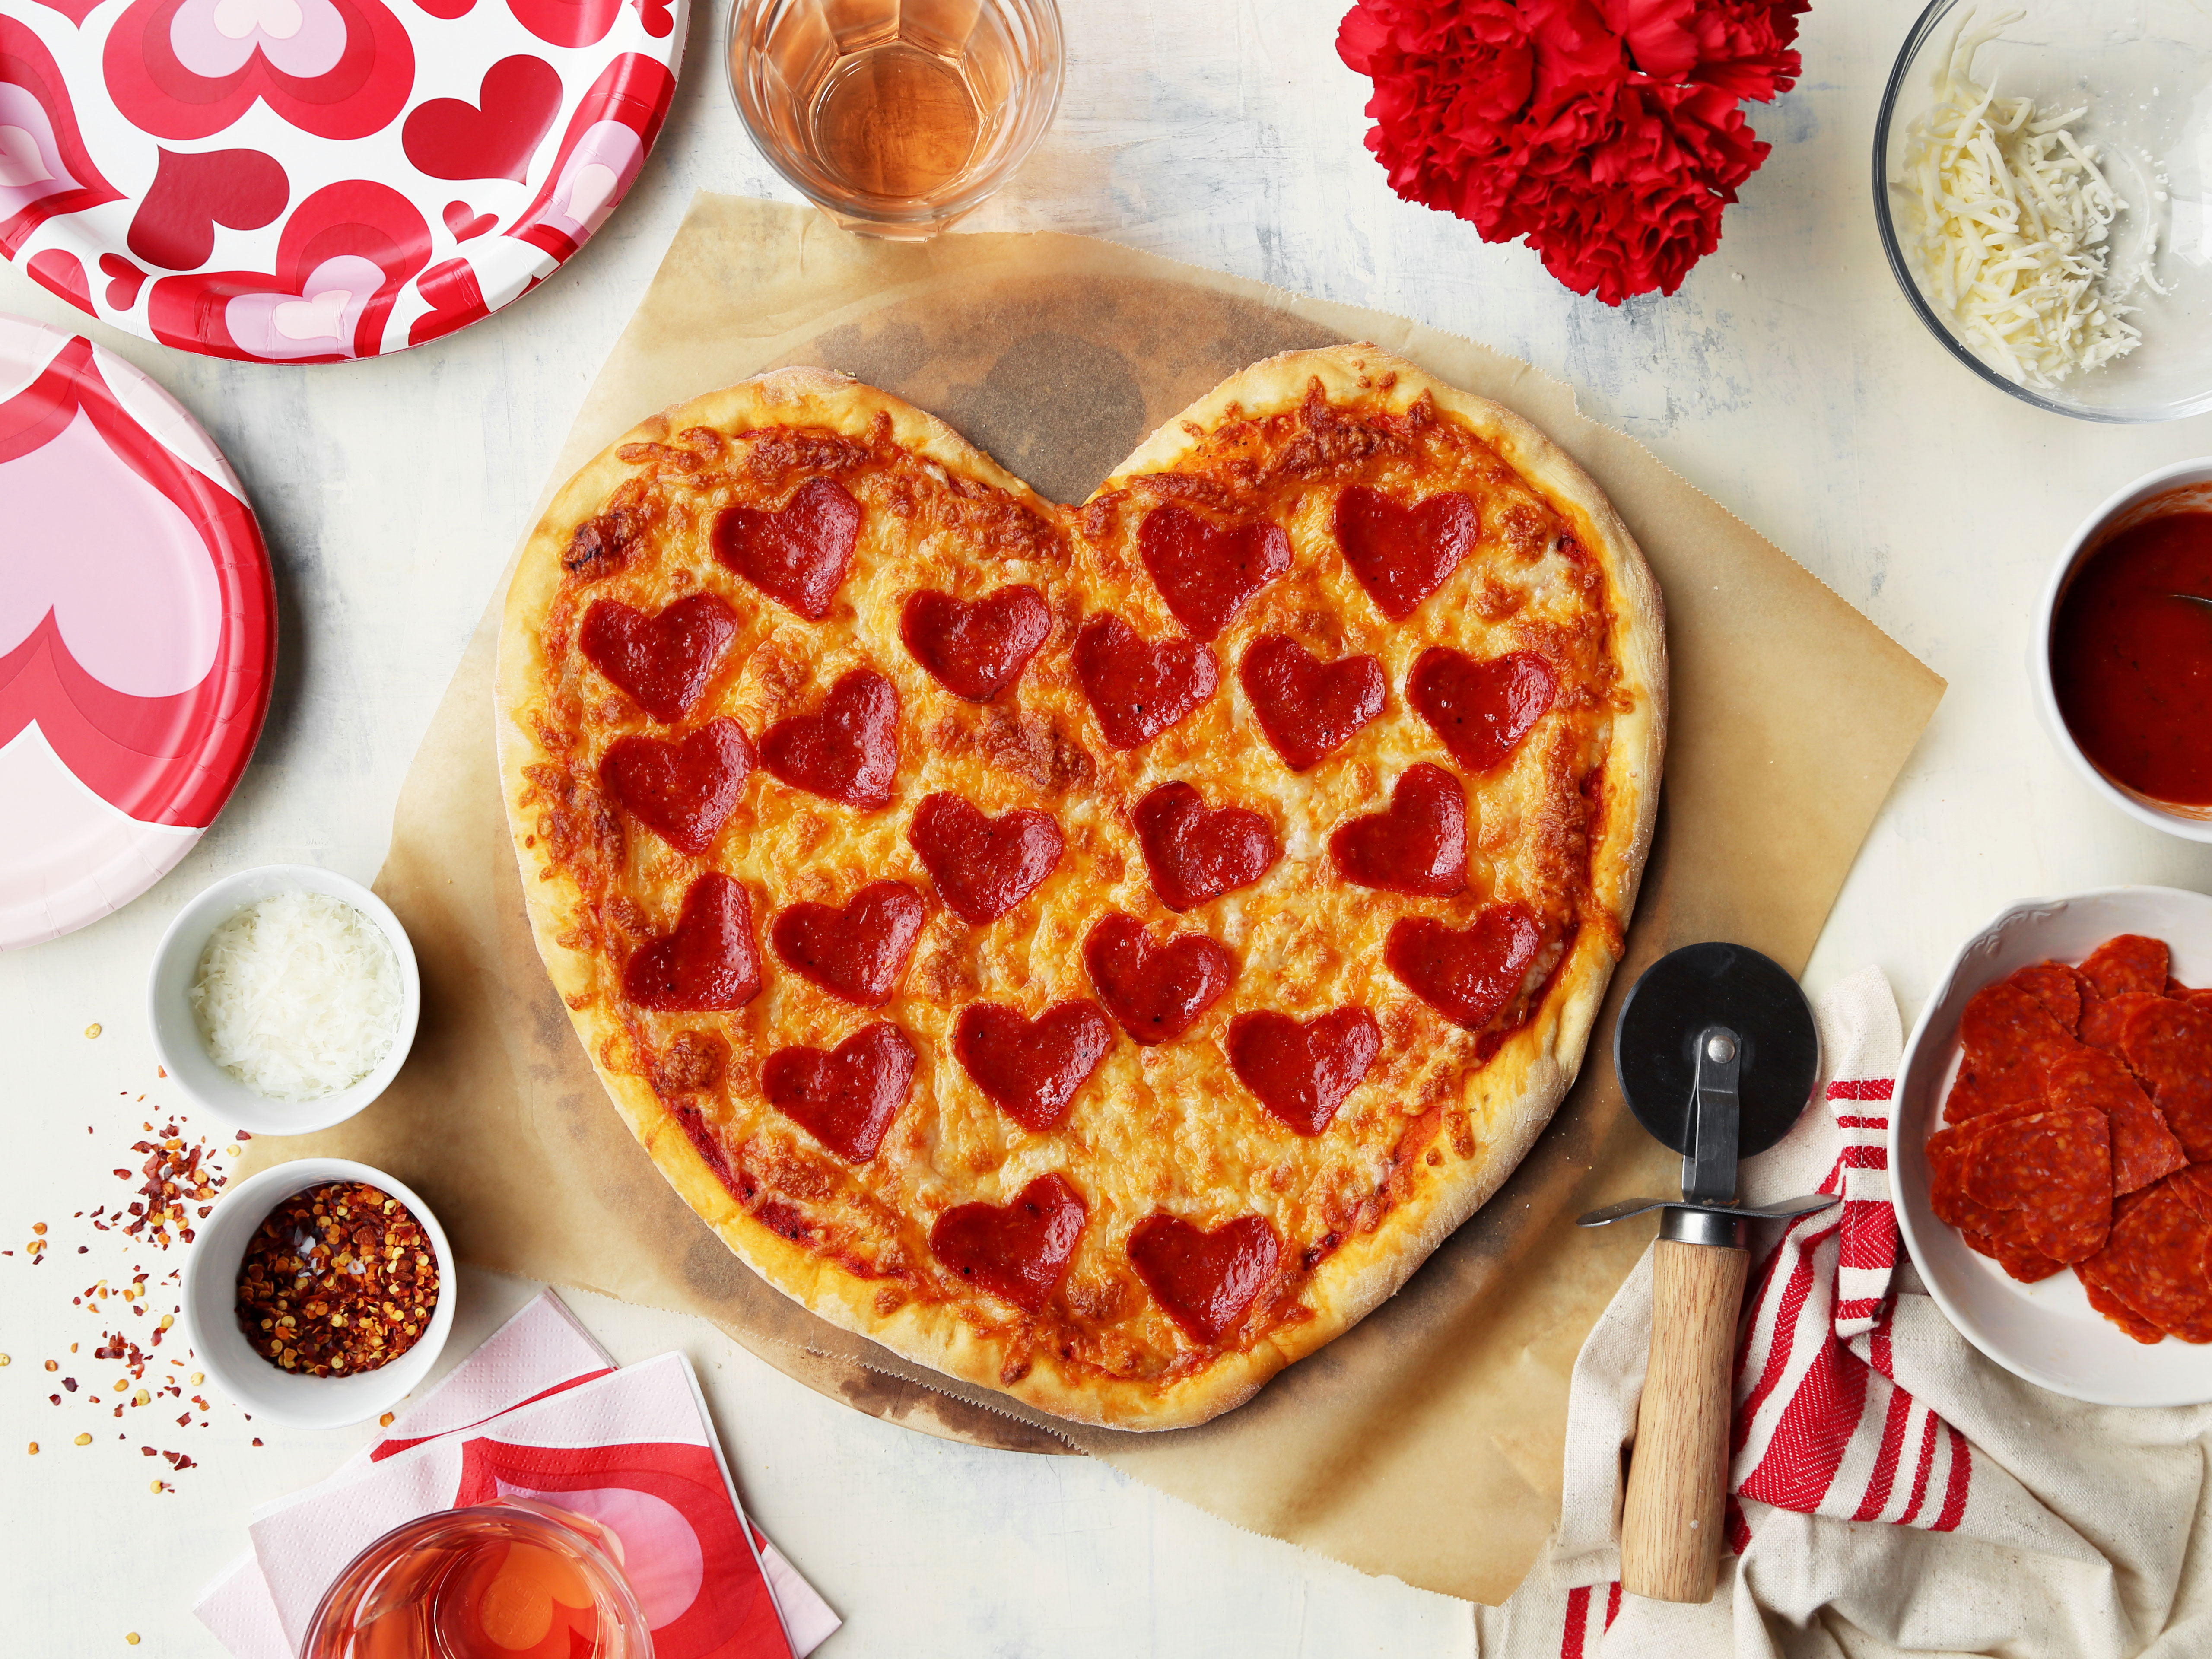 valentines day: recipes, tips, ideas and more - genius kitchen, Ideas